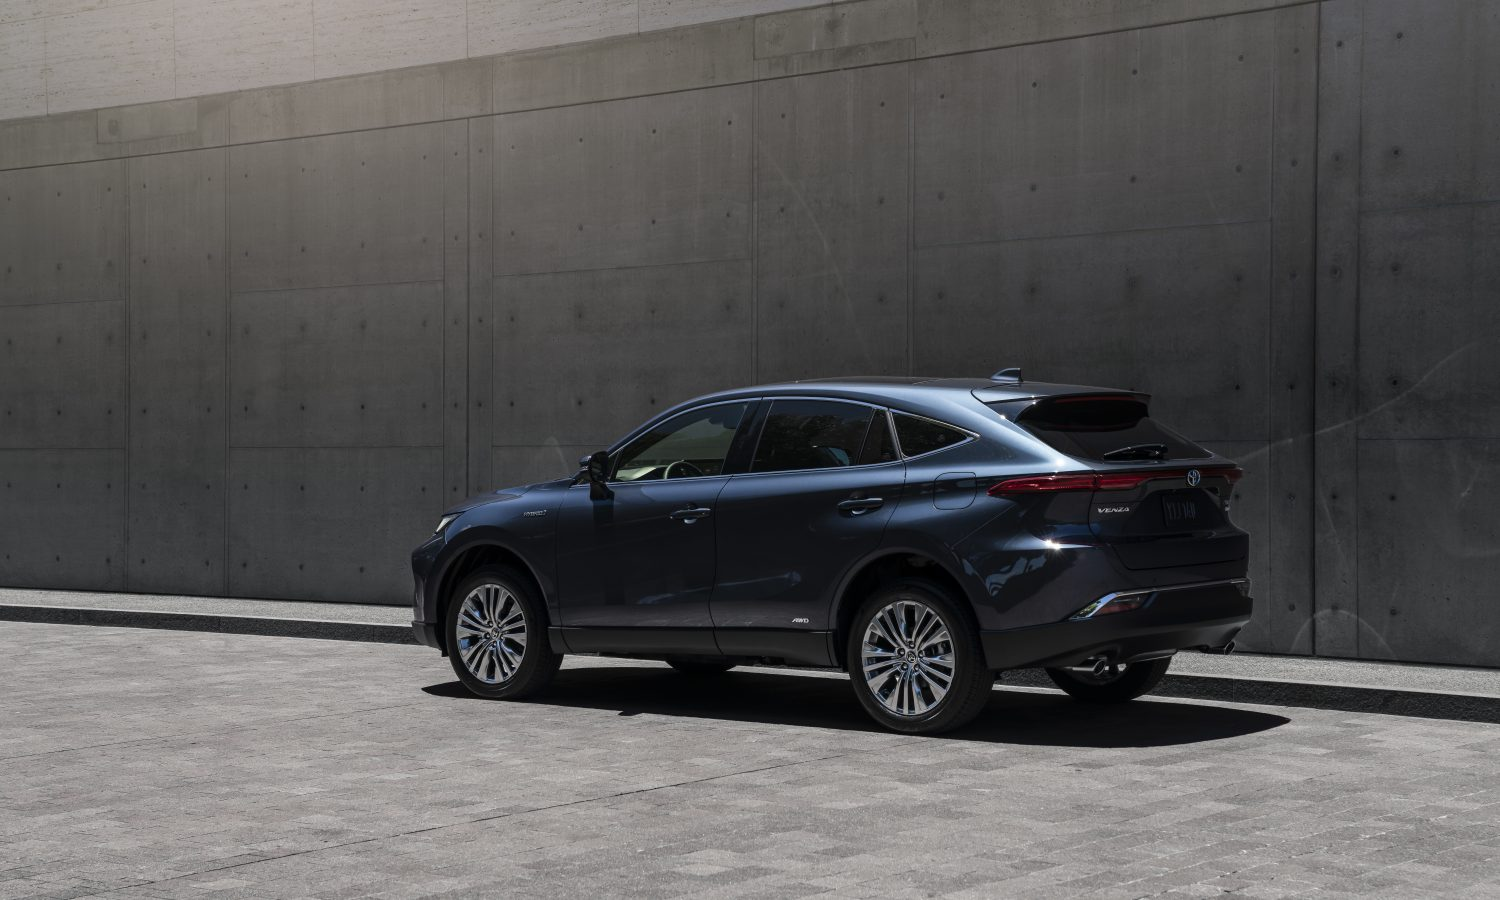 Elevated Driving Experience Comes Standard in the All-New 2021 Venza